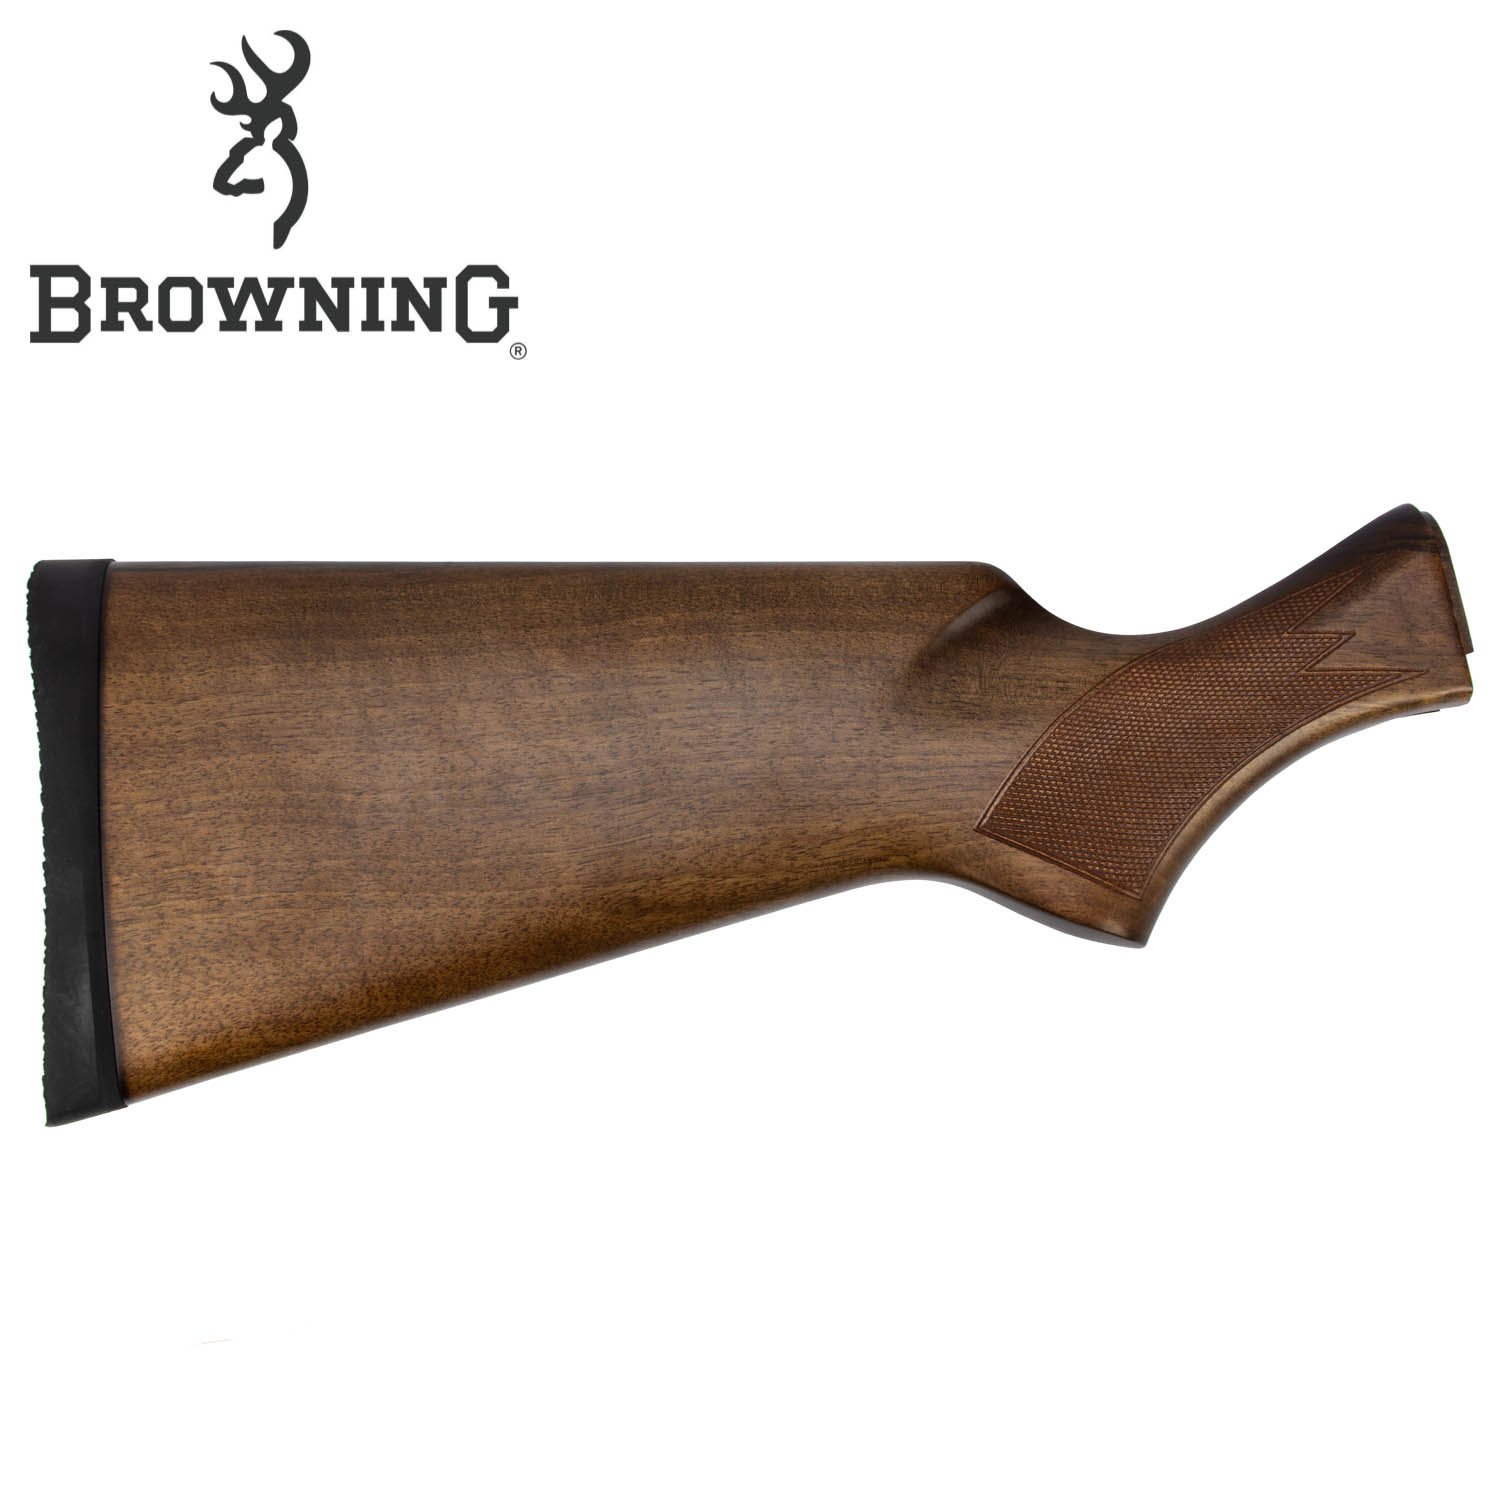 Browning BAR Rifle Butt Stock Classic Safari Hover To Zoom